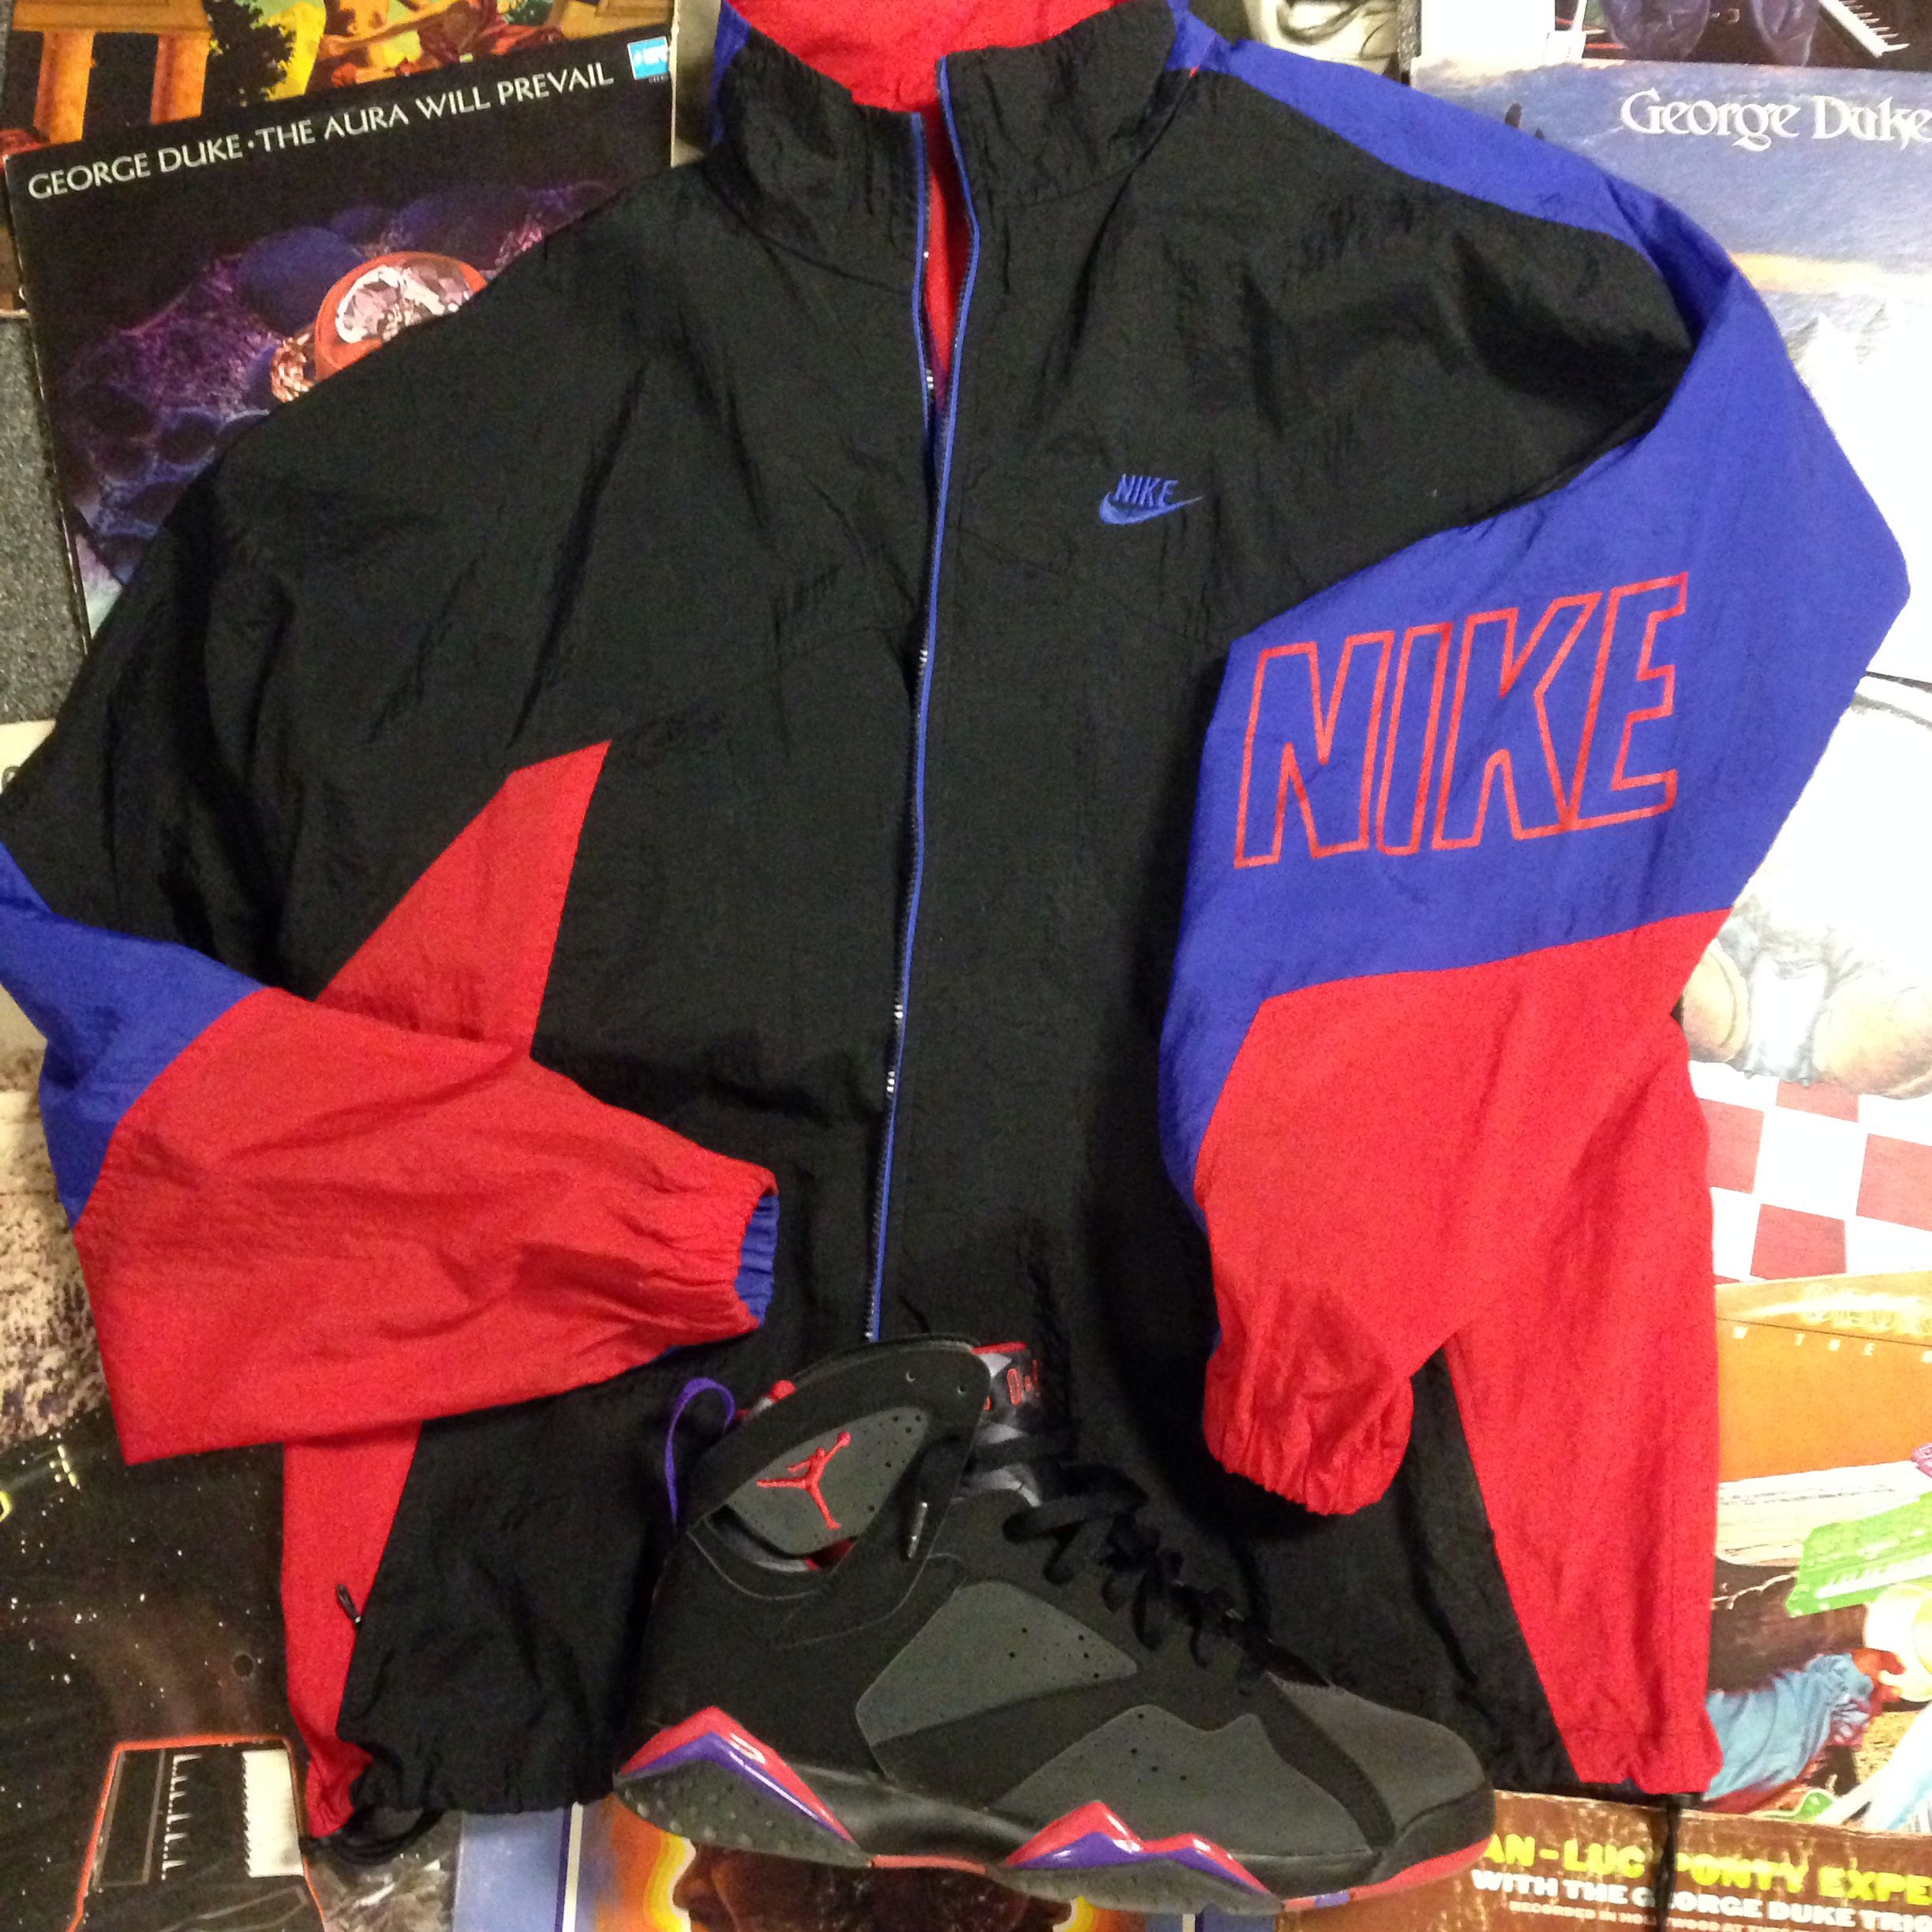 626e1b150 Vintage early 90's grey label nike windbreaker & Jordan Retro 7 ...